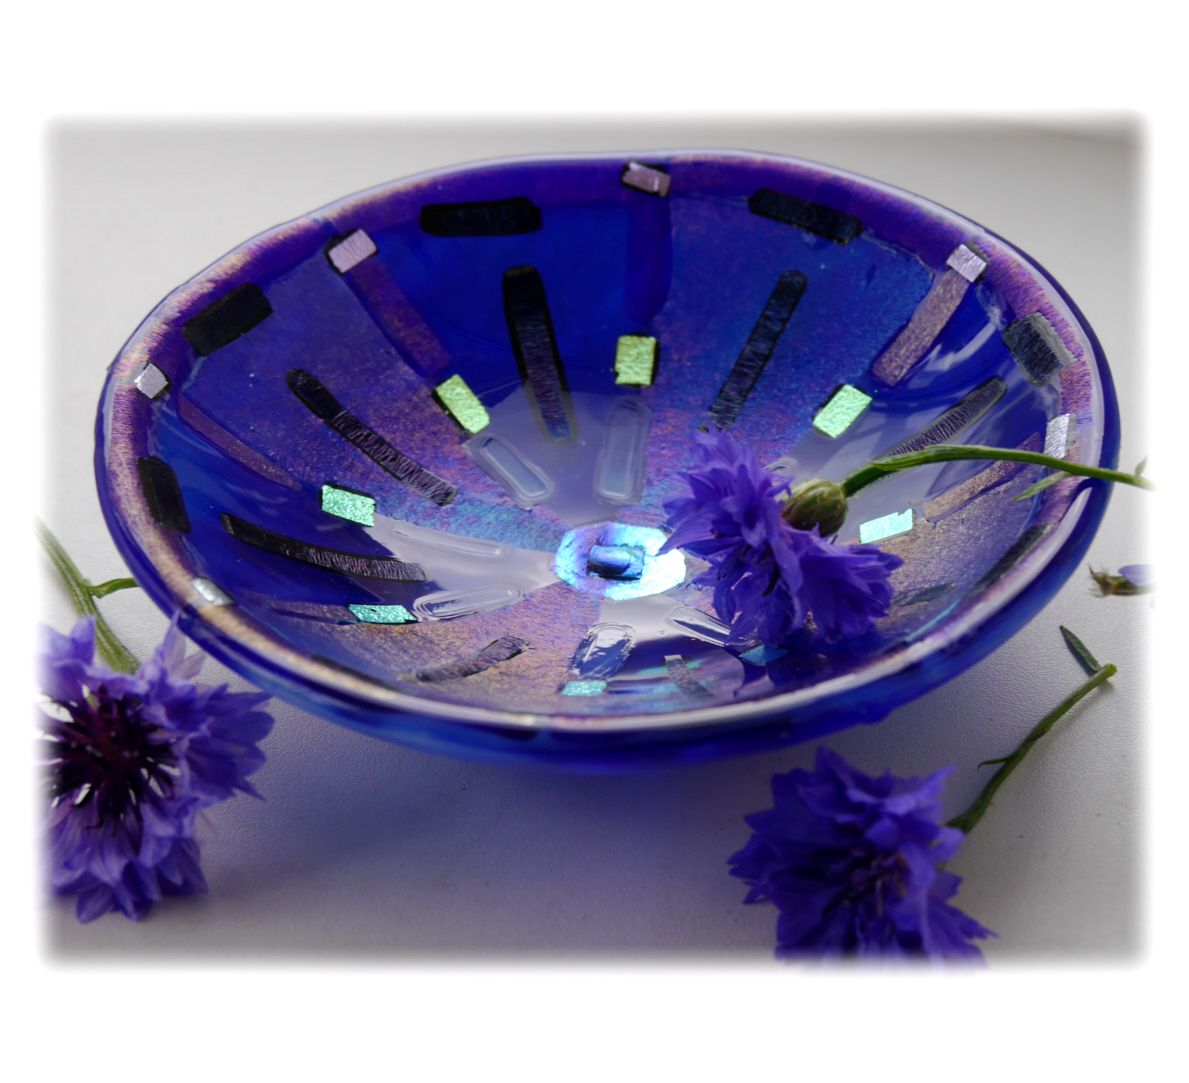 13cm Round Blue Dichroic Bowl FUSED 032 #1708 FREE 16.00